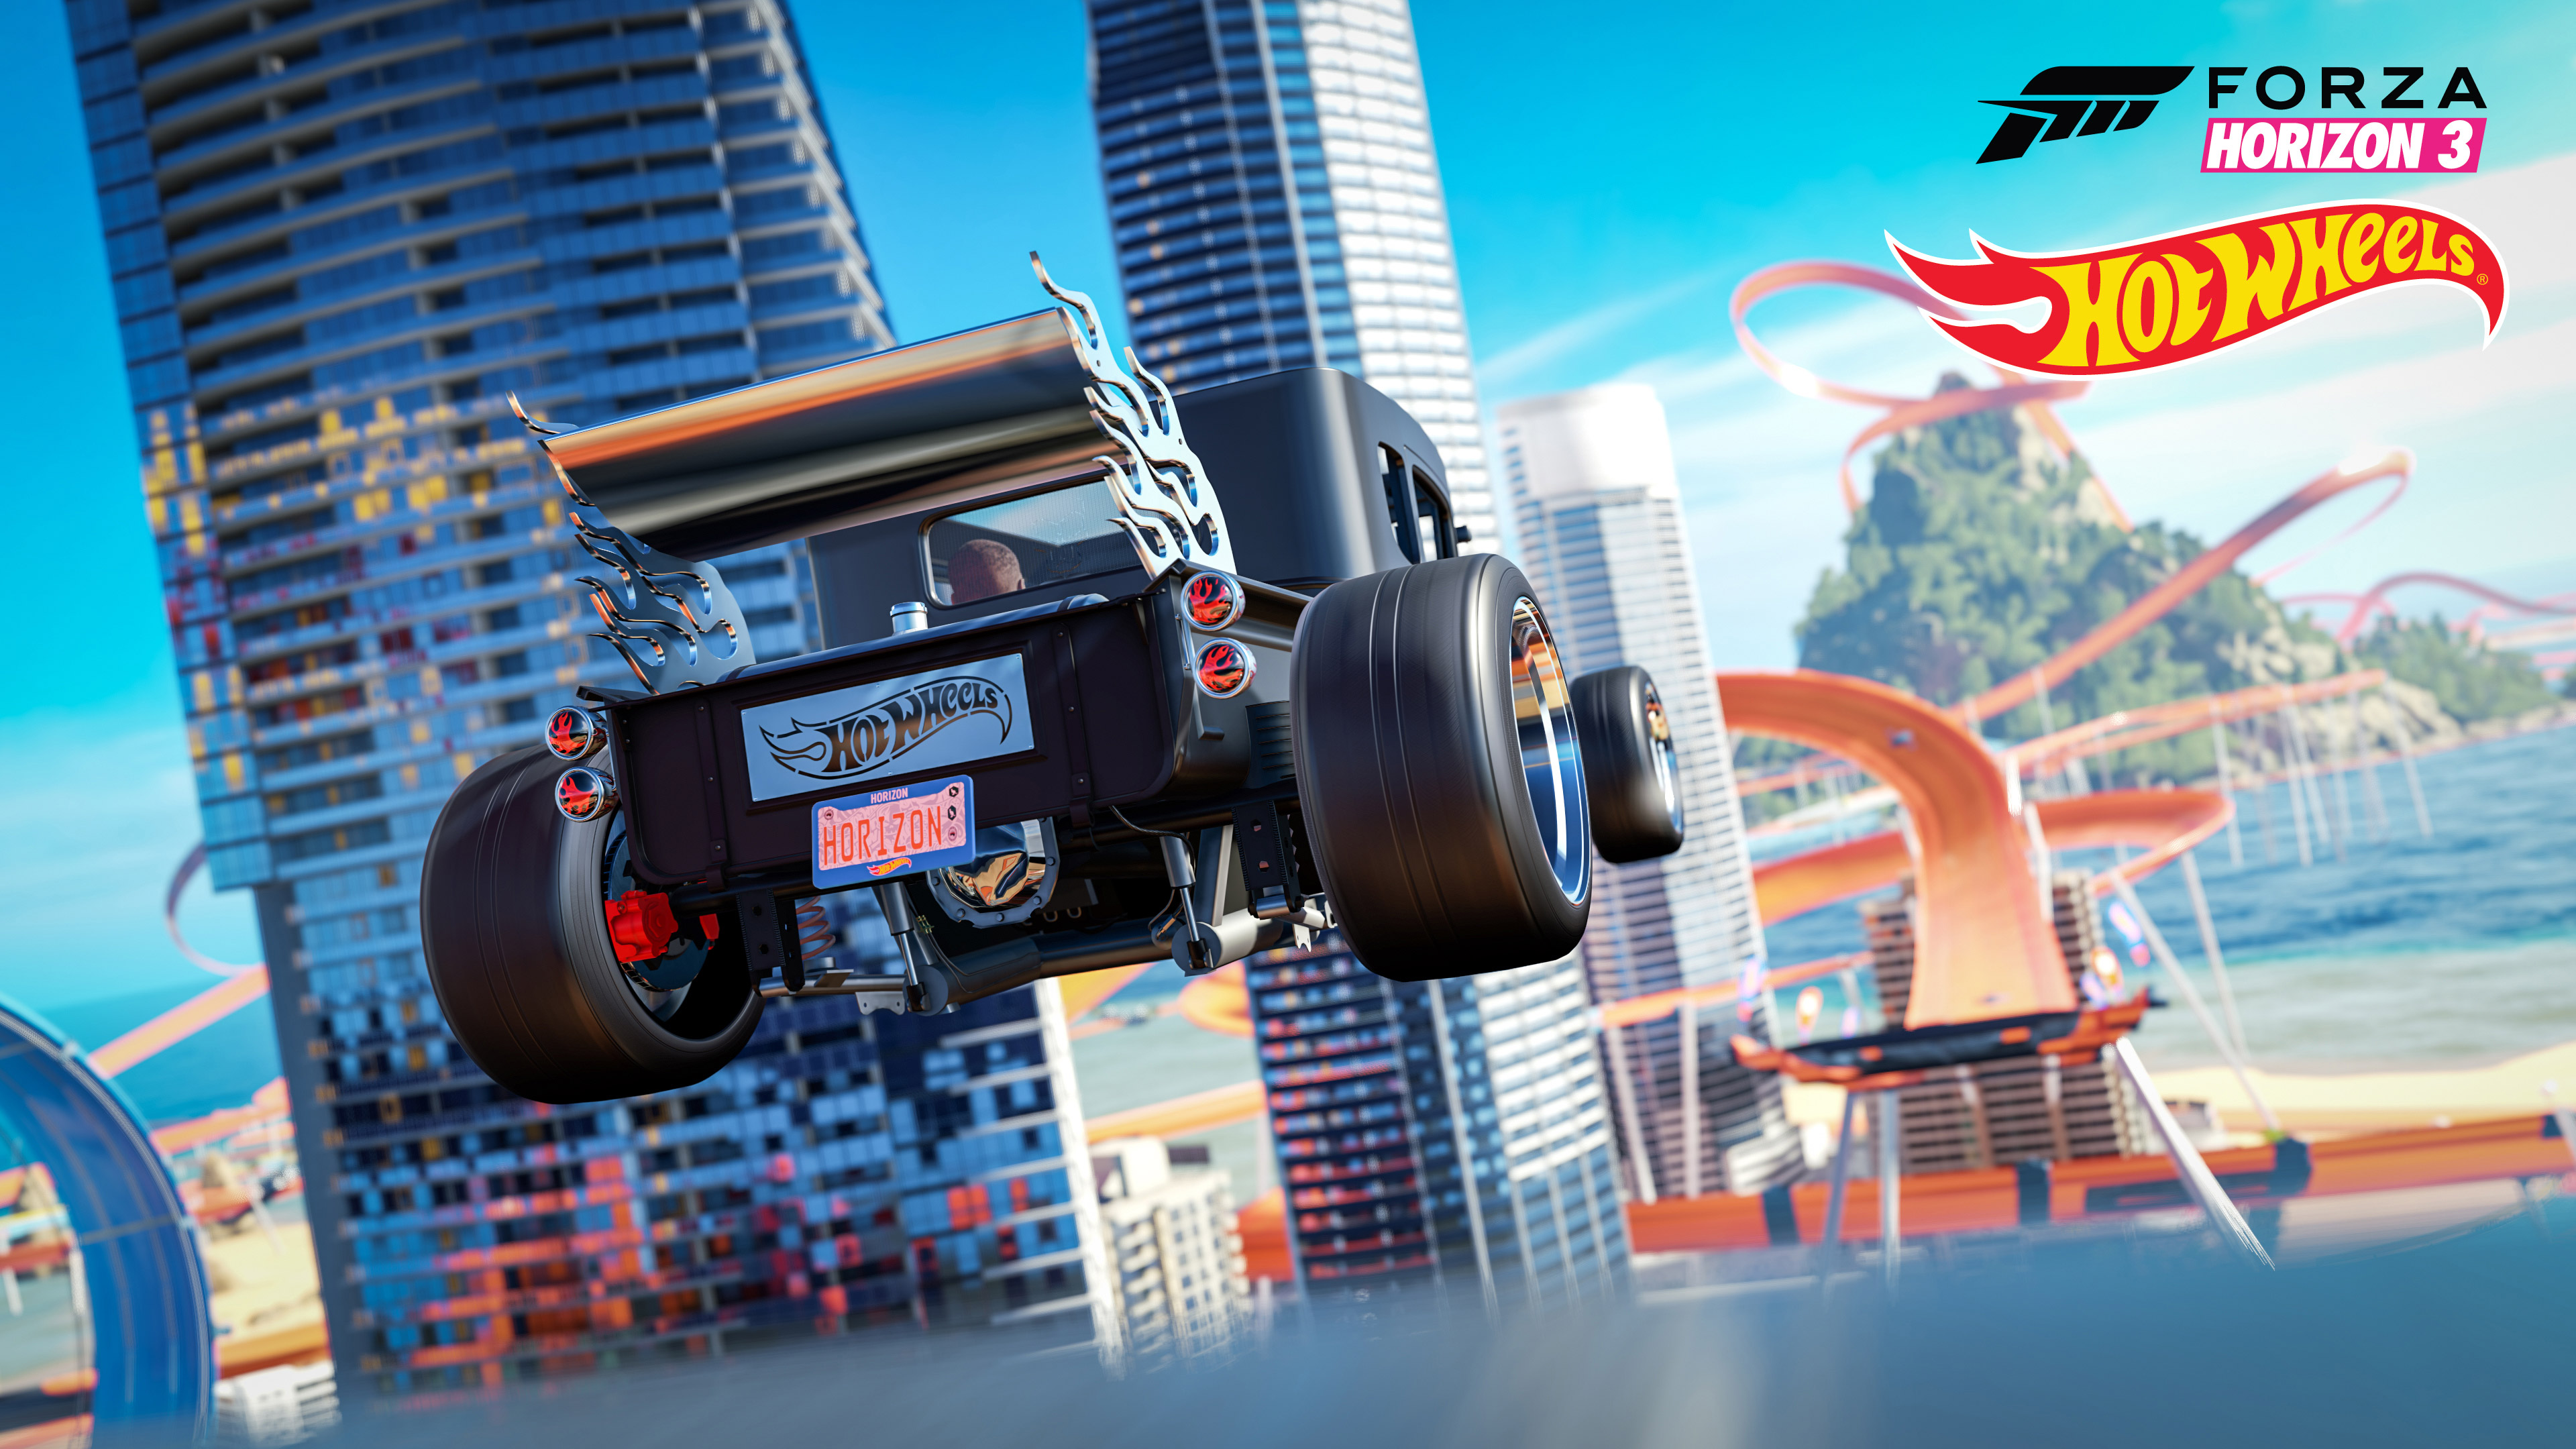 forza horizon 3 u2019s getting a cool hot wheels expansion